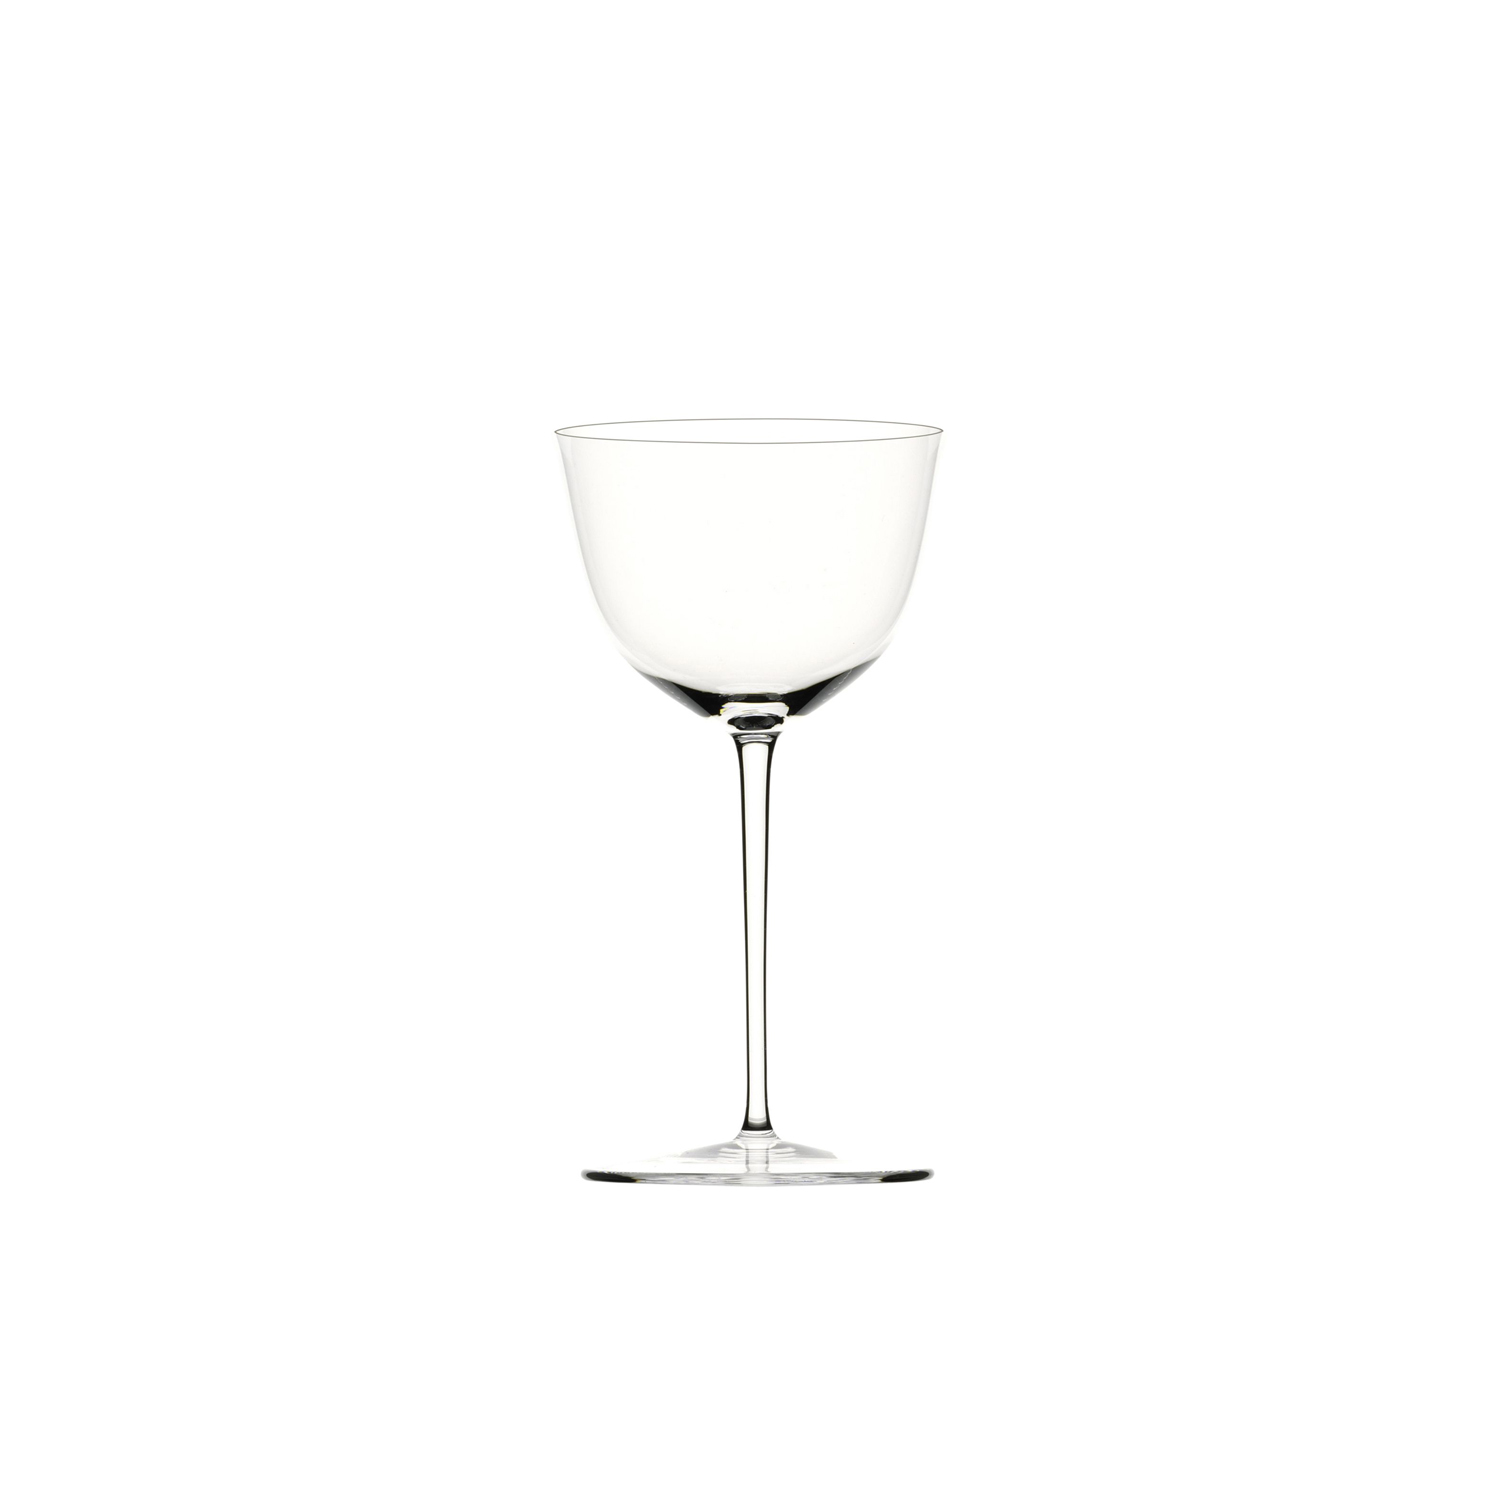 Drinking Set No.238 Wine Glass IV - Set of 6 - The perfectly flowing contours of these original Hoffmann shapes make this muslin glass service a classic. Josef Hoffmann designed the elegantly balanced glasses for Lobmeyr as early as 1917. The material, extremely delicate muslin glass, hand-blown in wooden shapes, gives the series its elegance.   Matter of Stuff